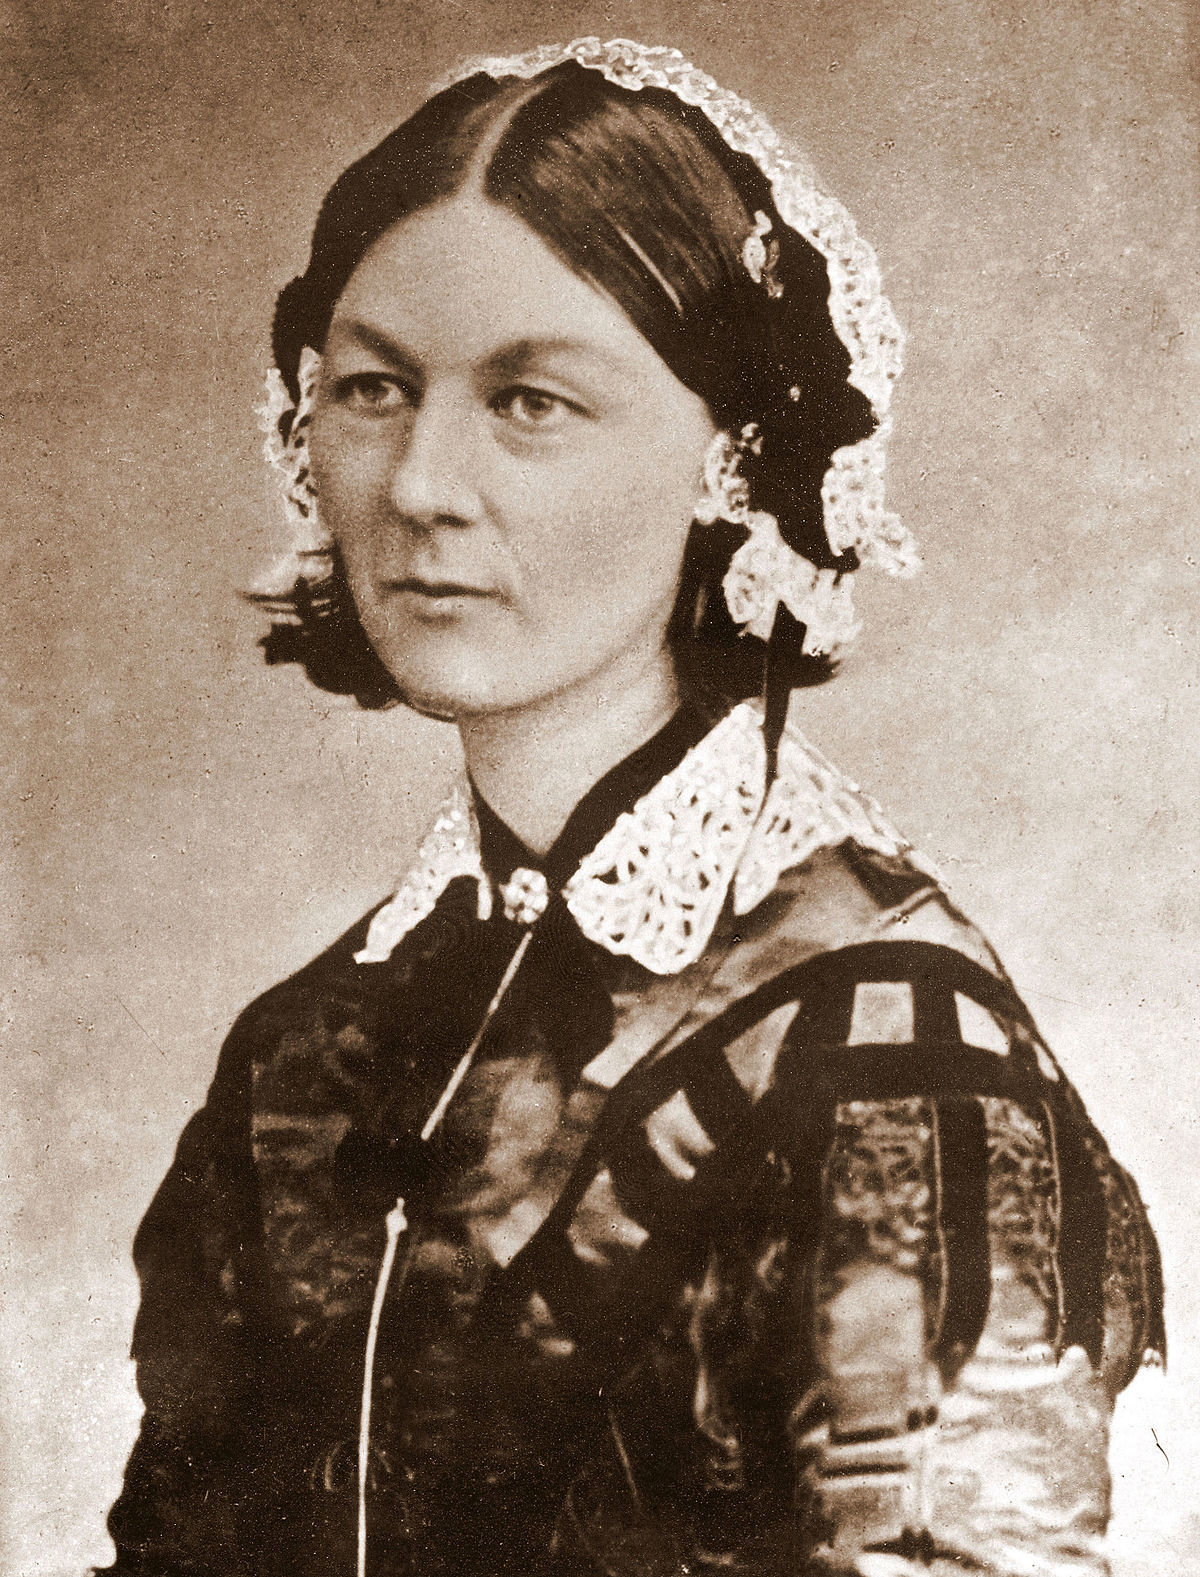 1200px-Florence_Nightingale_CDV_by_H_Lenthall.jpg